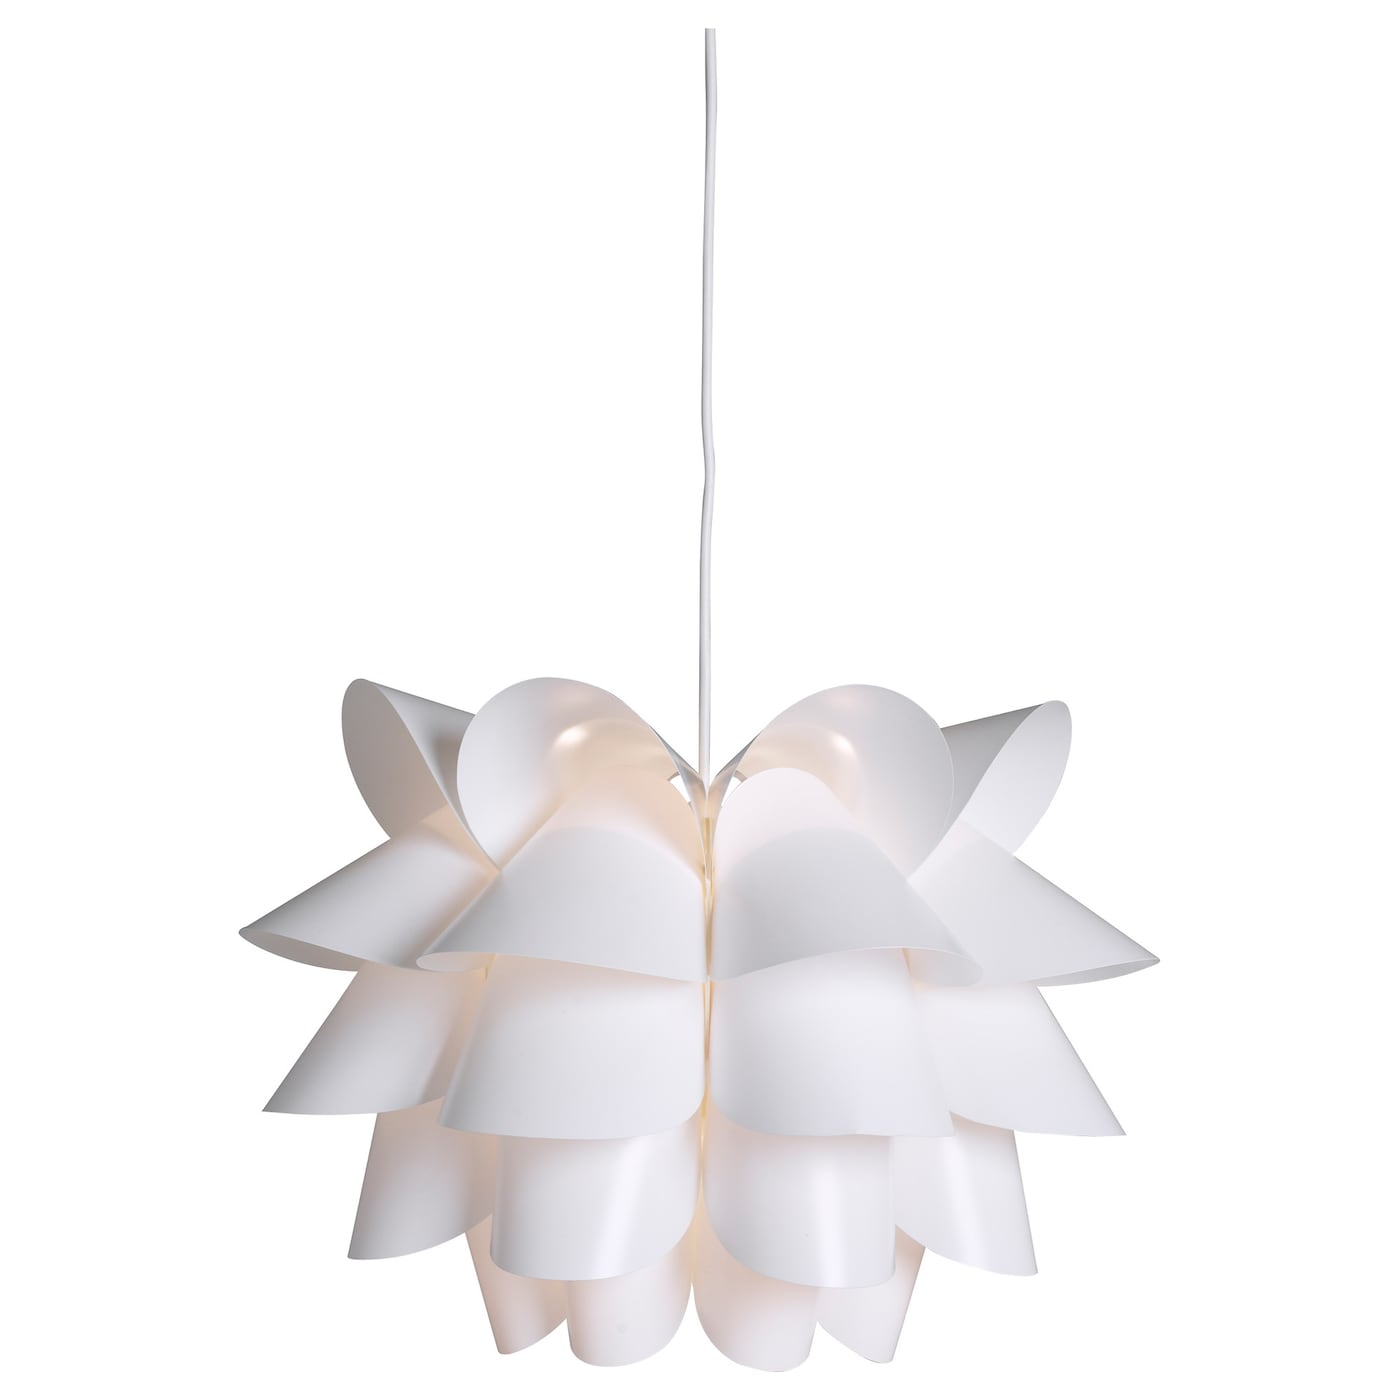 IKEA KNAPPA Pendant Lamp Gives A Soft Mood Light